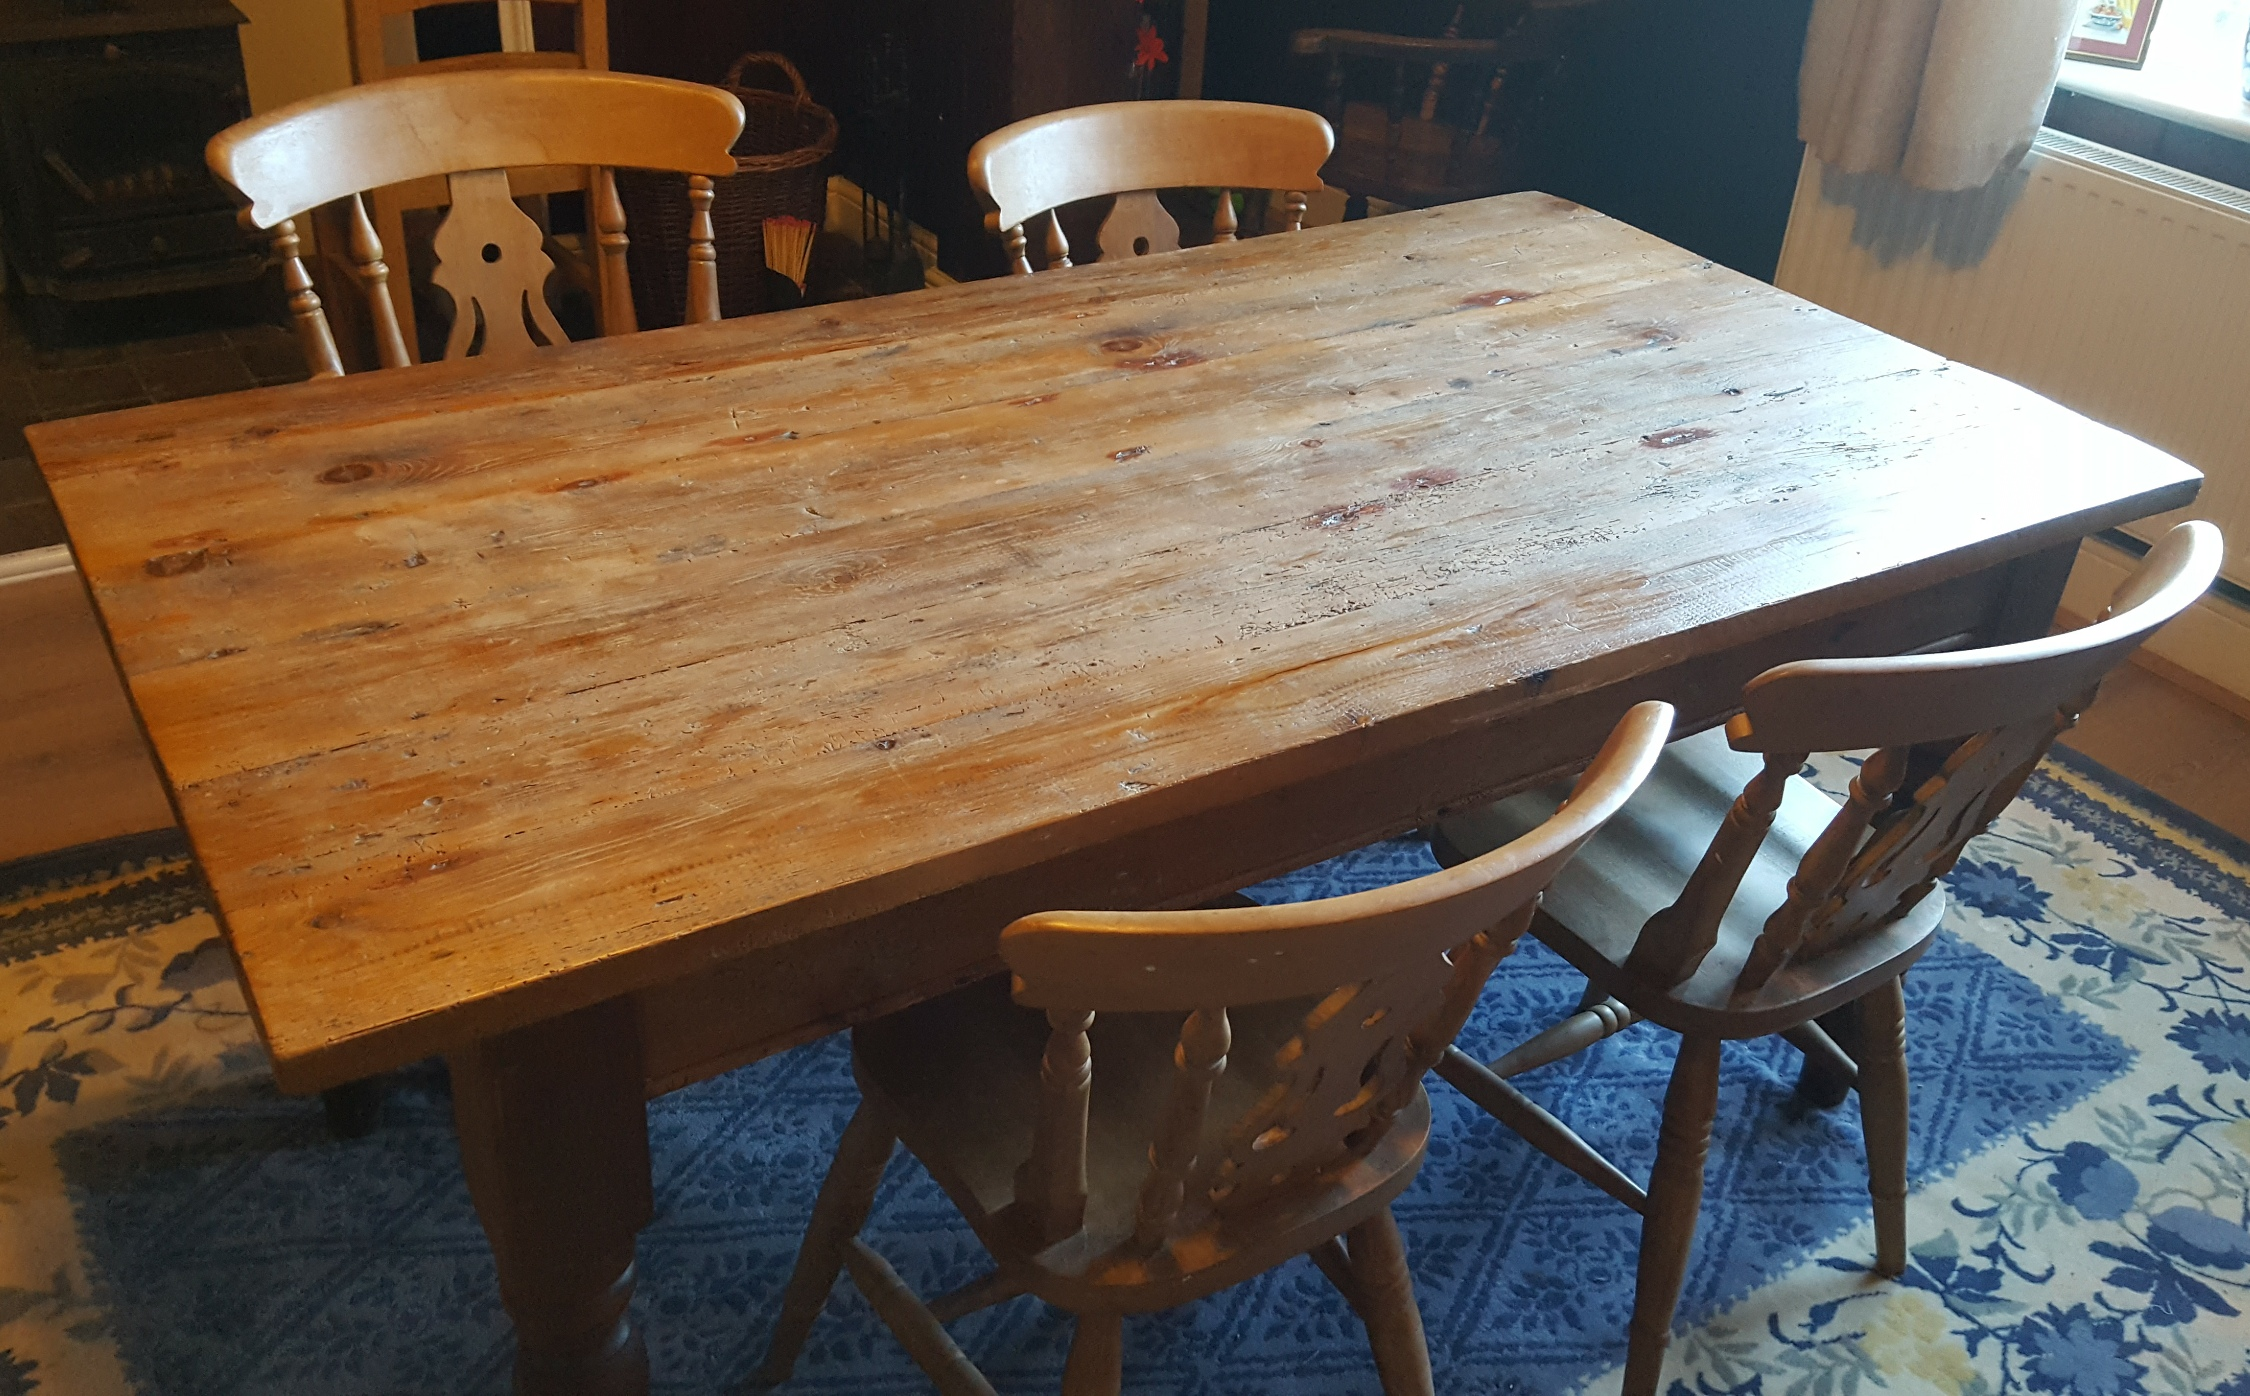 Lot 23 - Vintage Farmhouse Table & Chairs